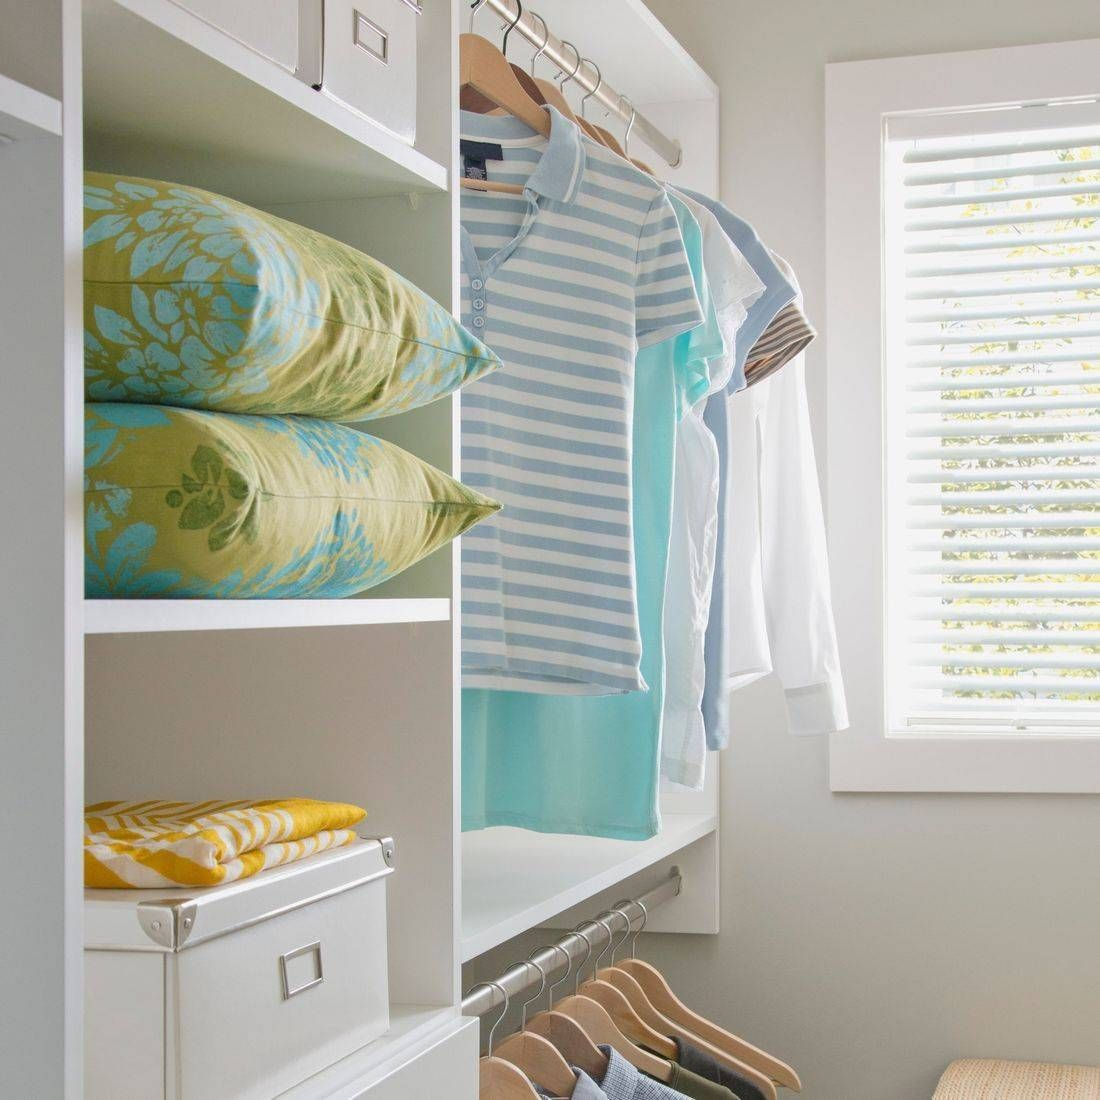 Interior Design Home Staging: Closet Organization, Home Staging